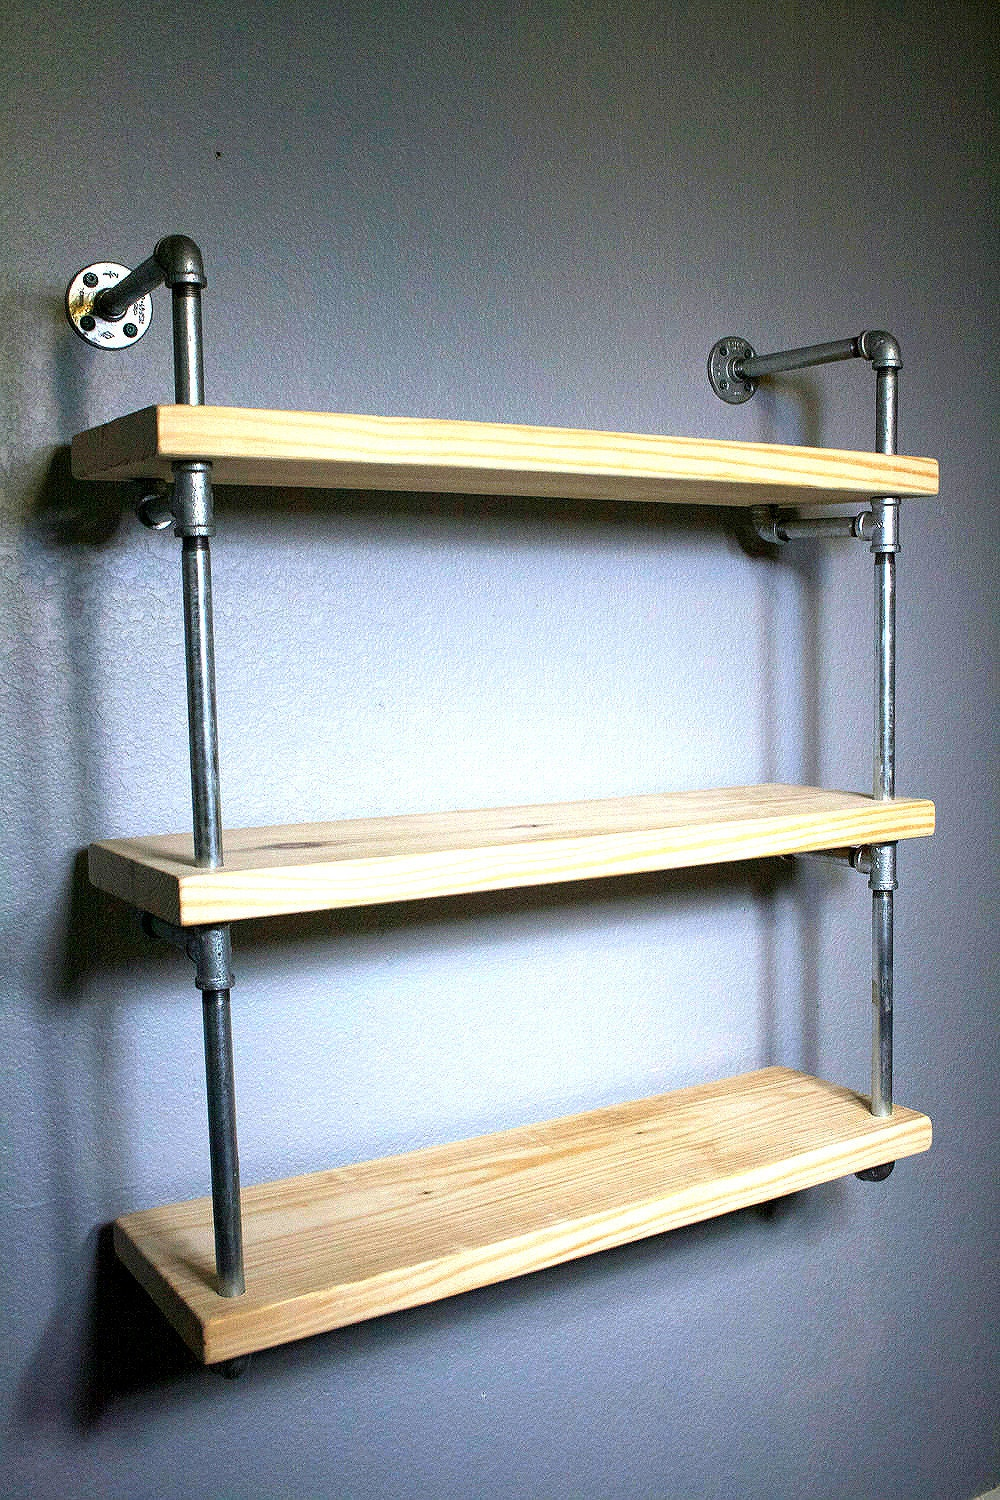 bathroom shelf pipe shelves industrial furniture. Black Bedroom Furniture Sets. Home Design Ideas